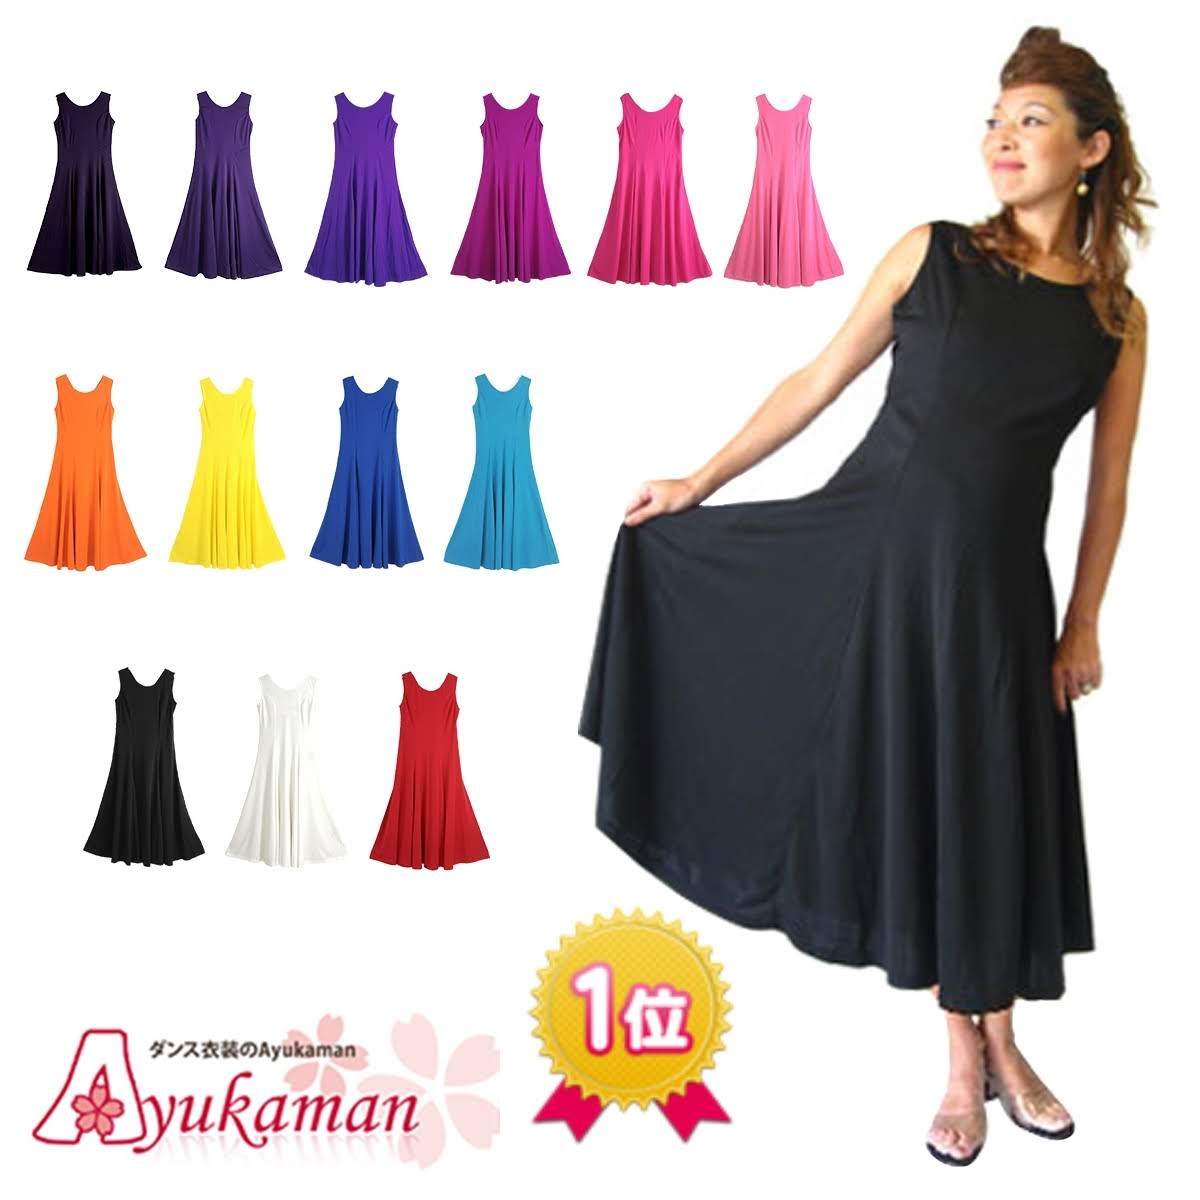 Cooperative New A Line Cap Sleeve Black Long Formal Evening Dress Sequined V Neck Party Banquet Choir Dresses Weddings & Events